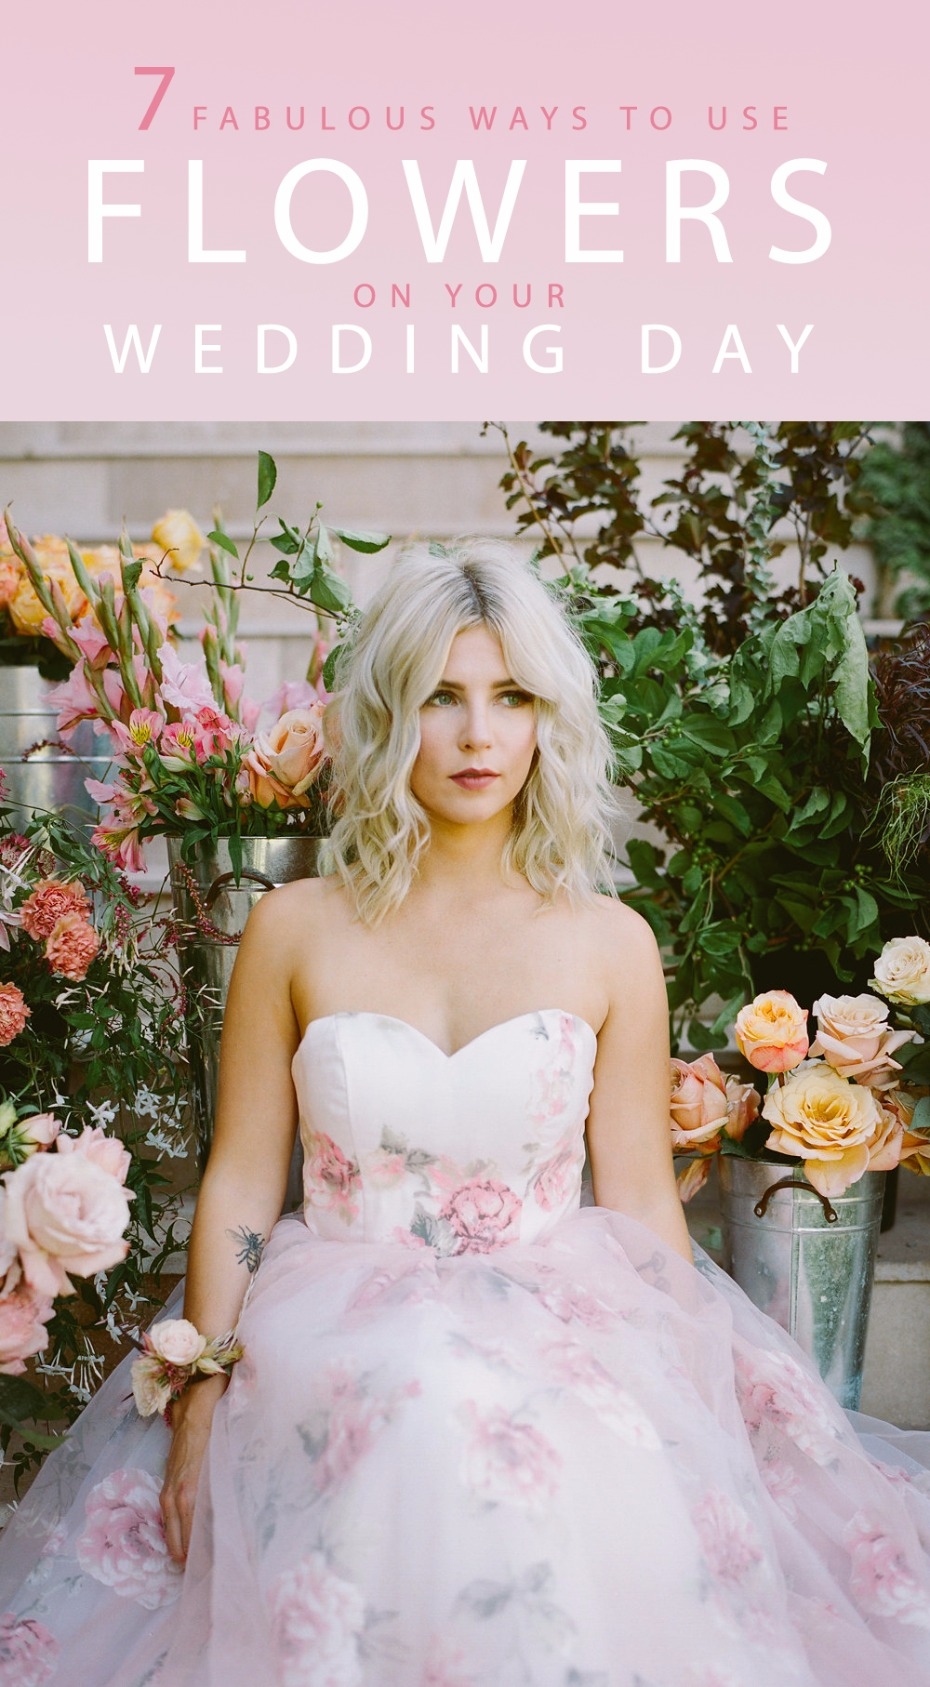 7 Fabulous Hair Magazines You Ve Got To Flip Through Hair: 7 Fabulous Ways To Use Flowers On Your Wedding Day